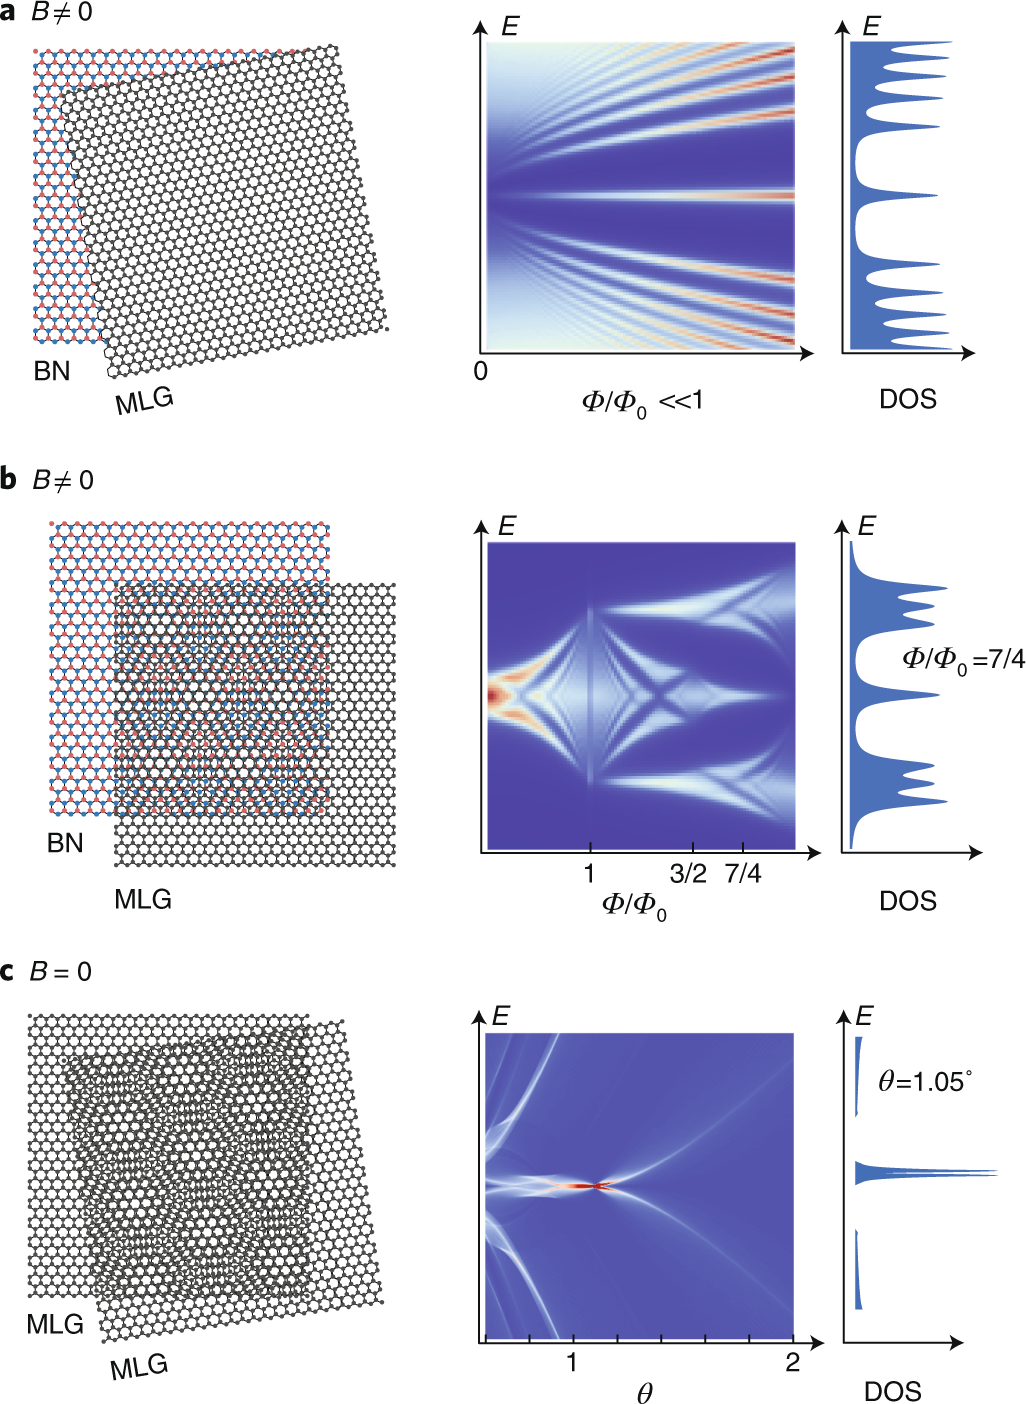 Superconductivity and strong correlations in moiré flat bands ...